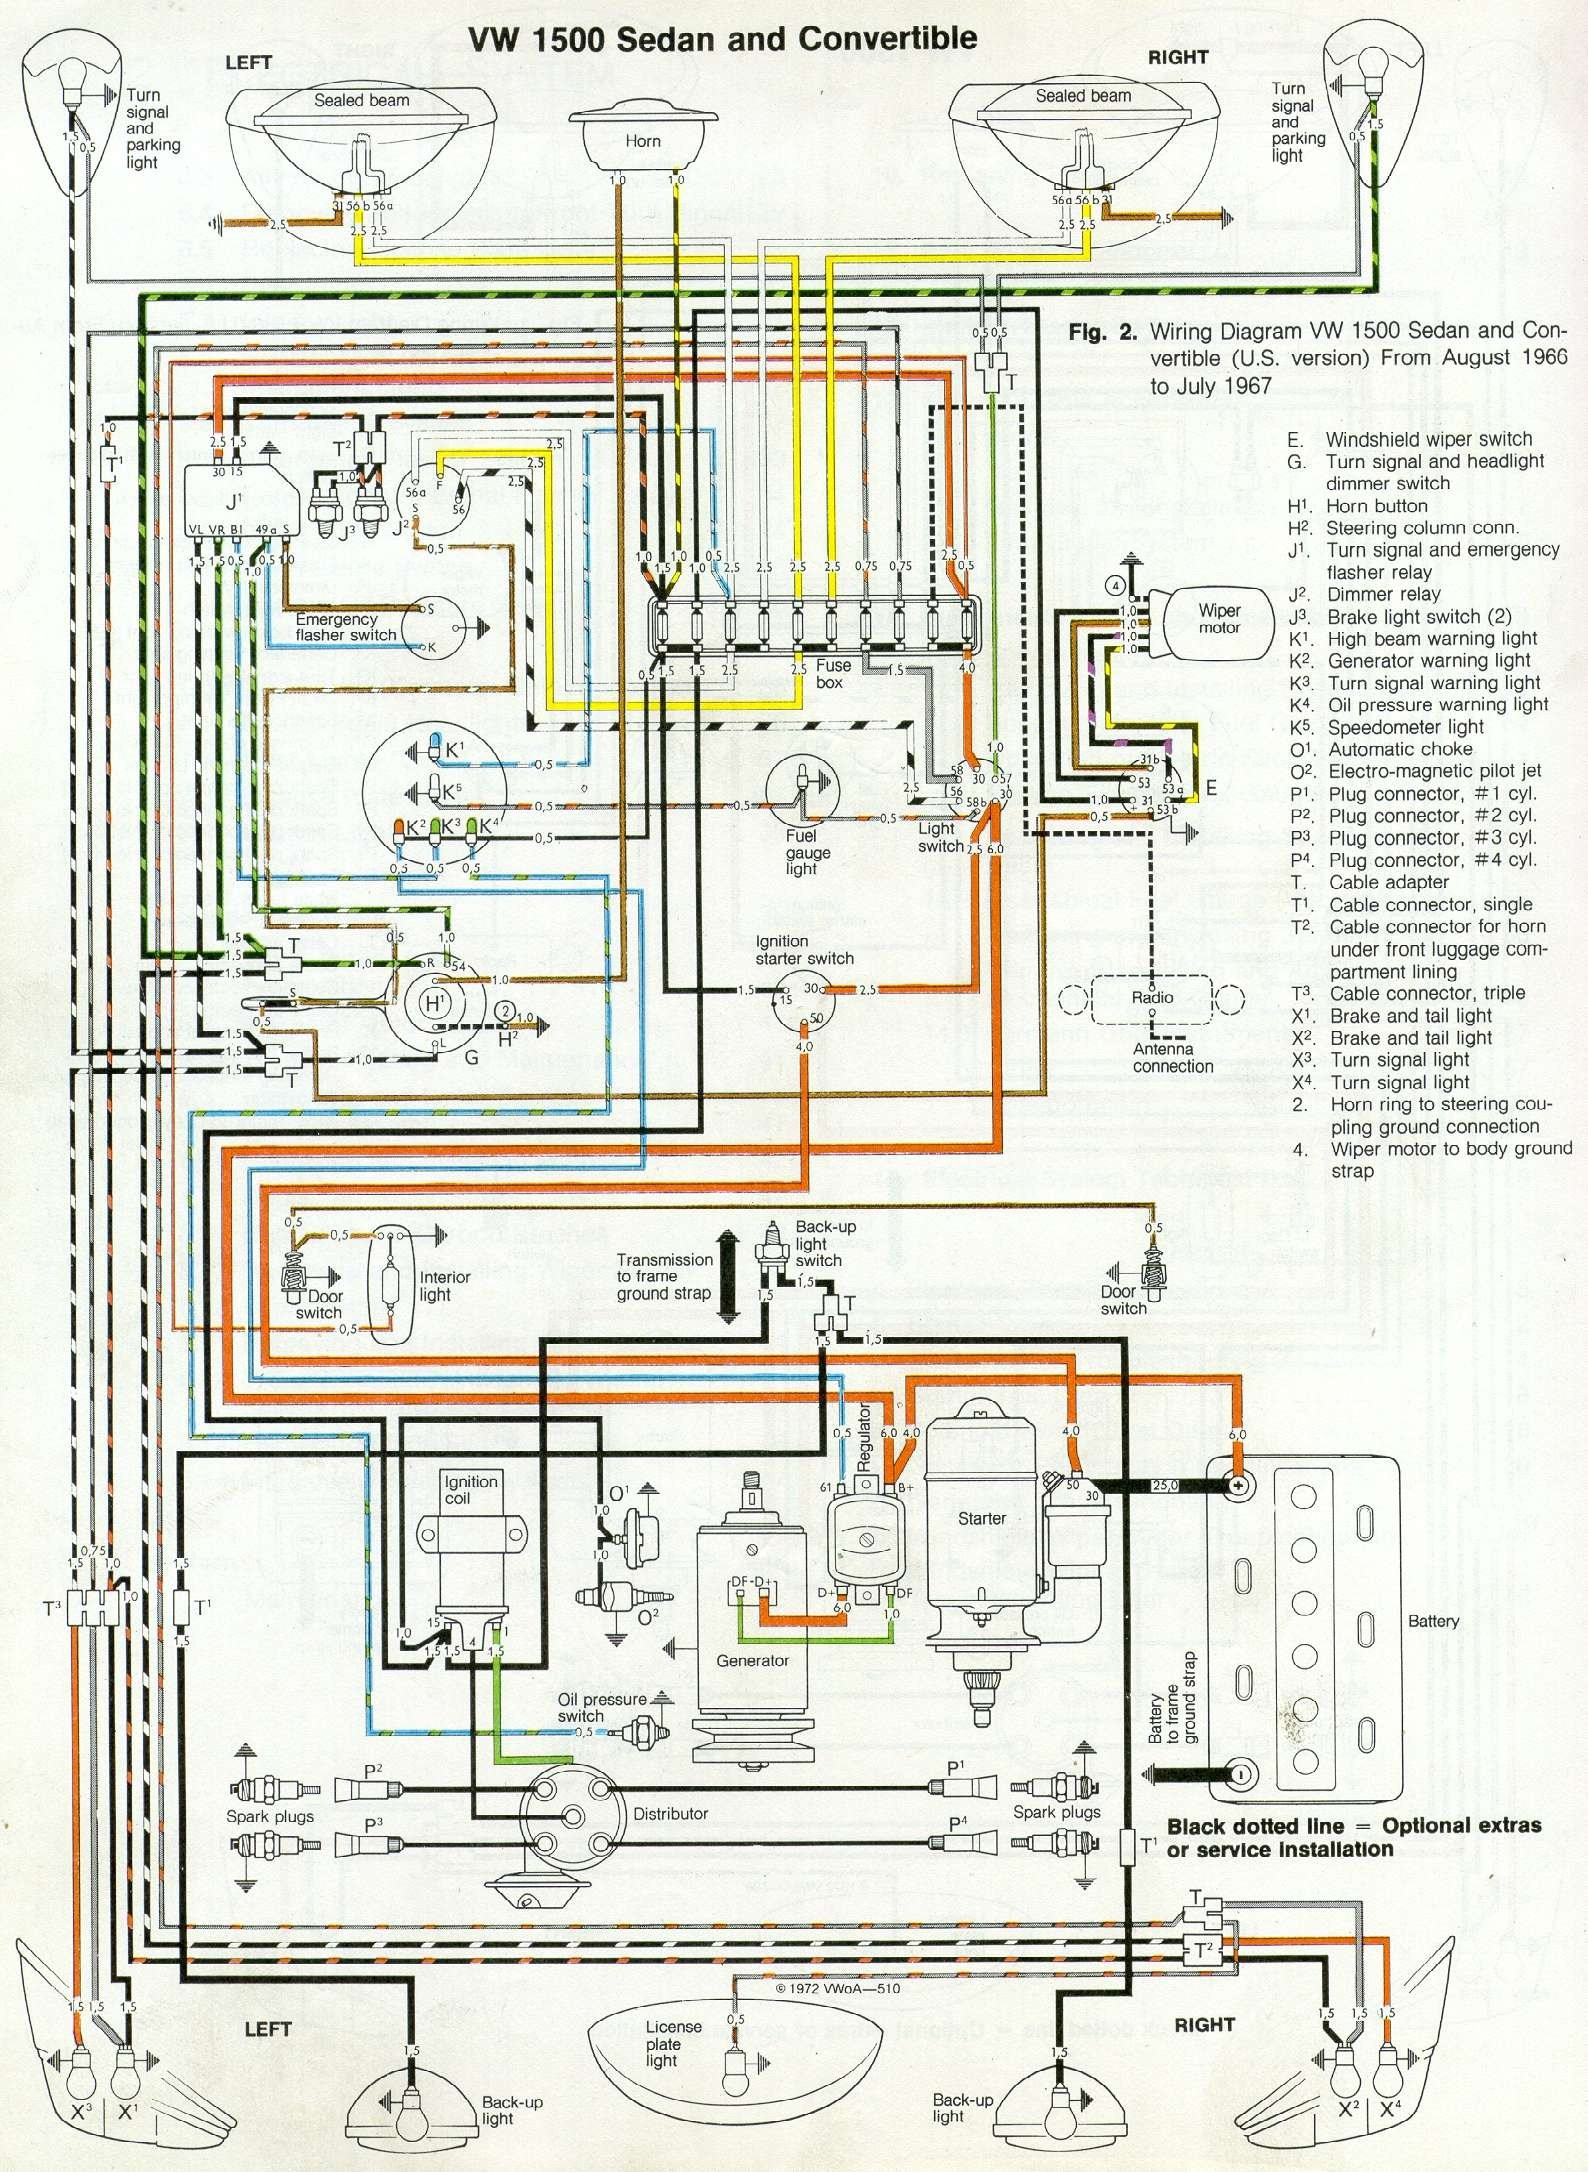 VW Beetle Wiring Digram vw beetle diagram vw beetle timing belt marks \u2022 wiring diagrams  at creativeand.co